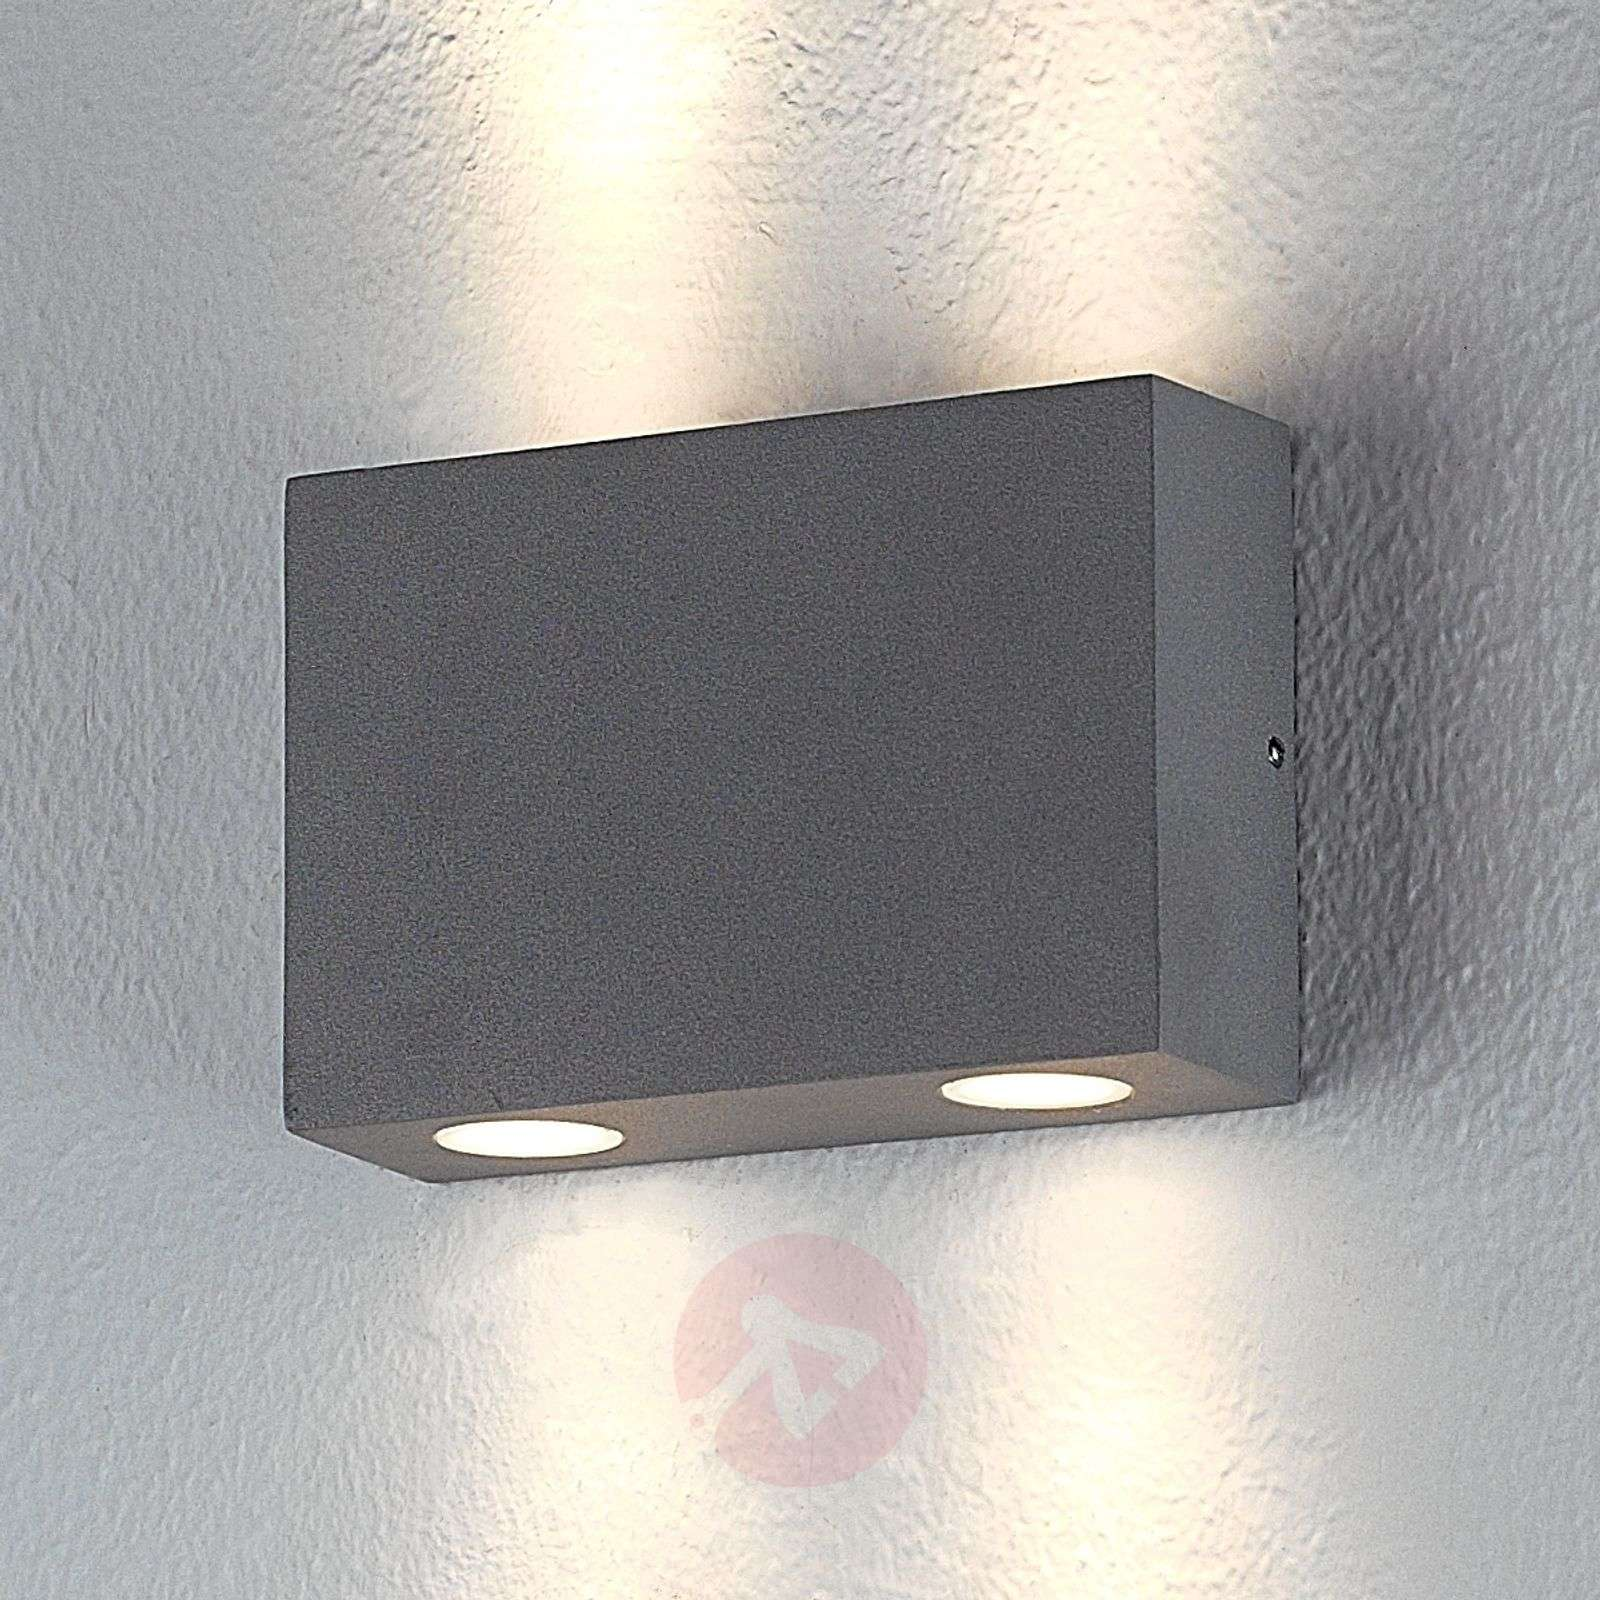 Rectangular outdoor wall light Henor with 4 LEDs-9616001-02